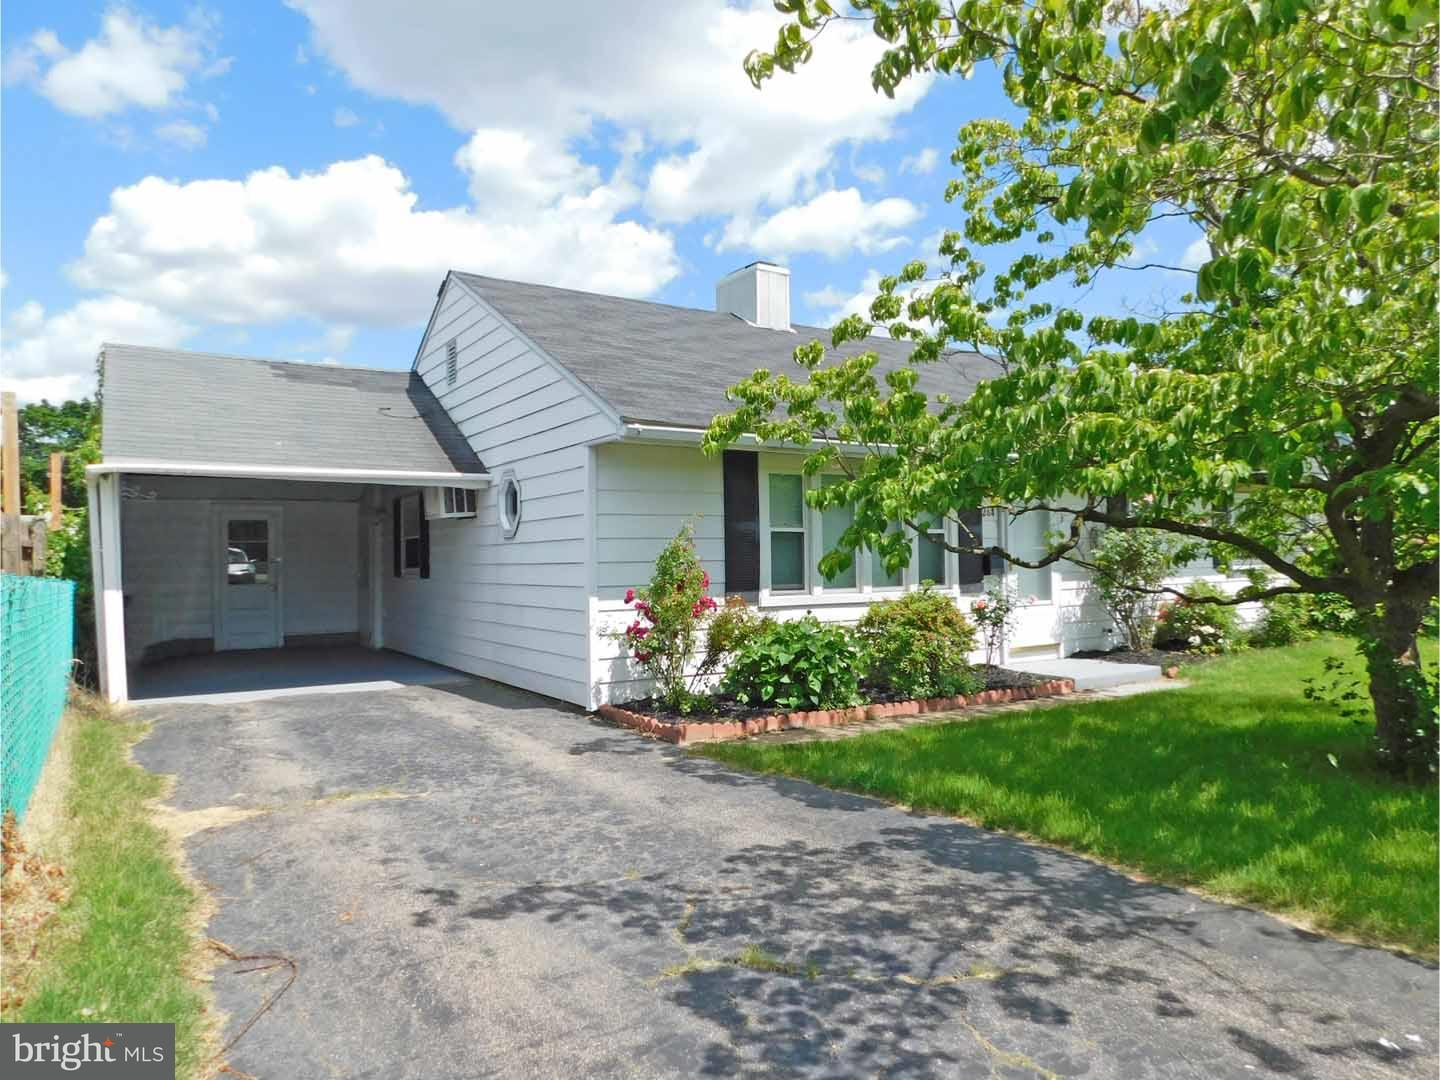 264 N OLDS BLVD, FAIRLESS HILLS - Listed at $239,900, FAIRLESS HILLS